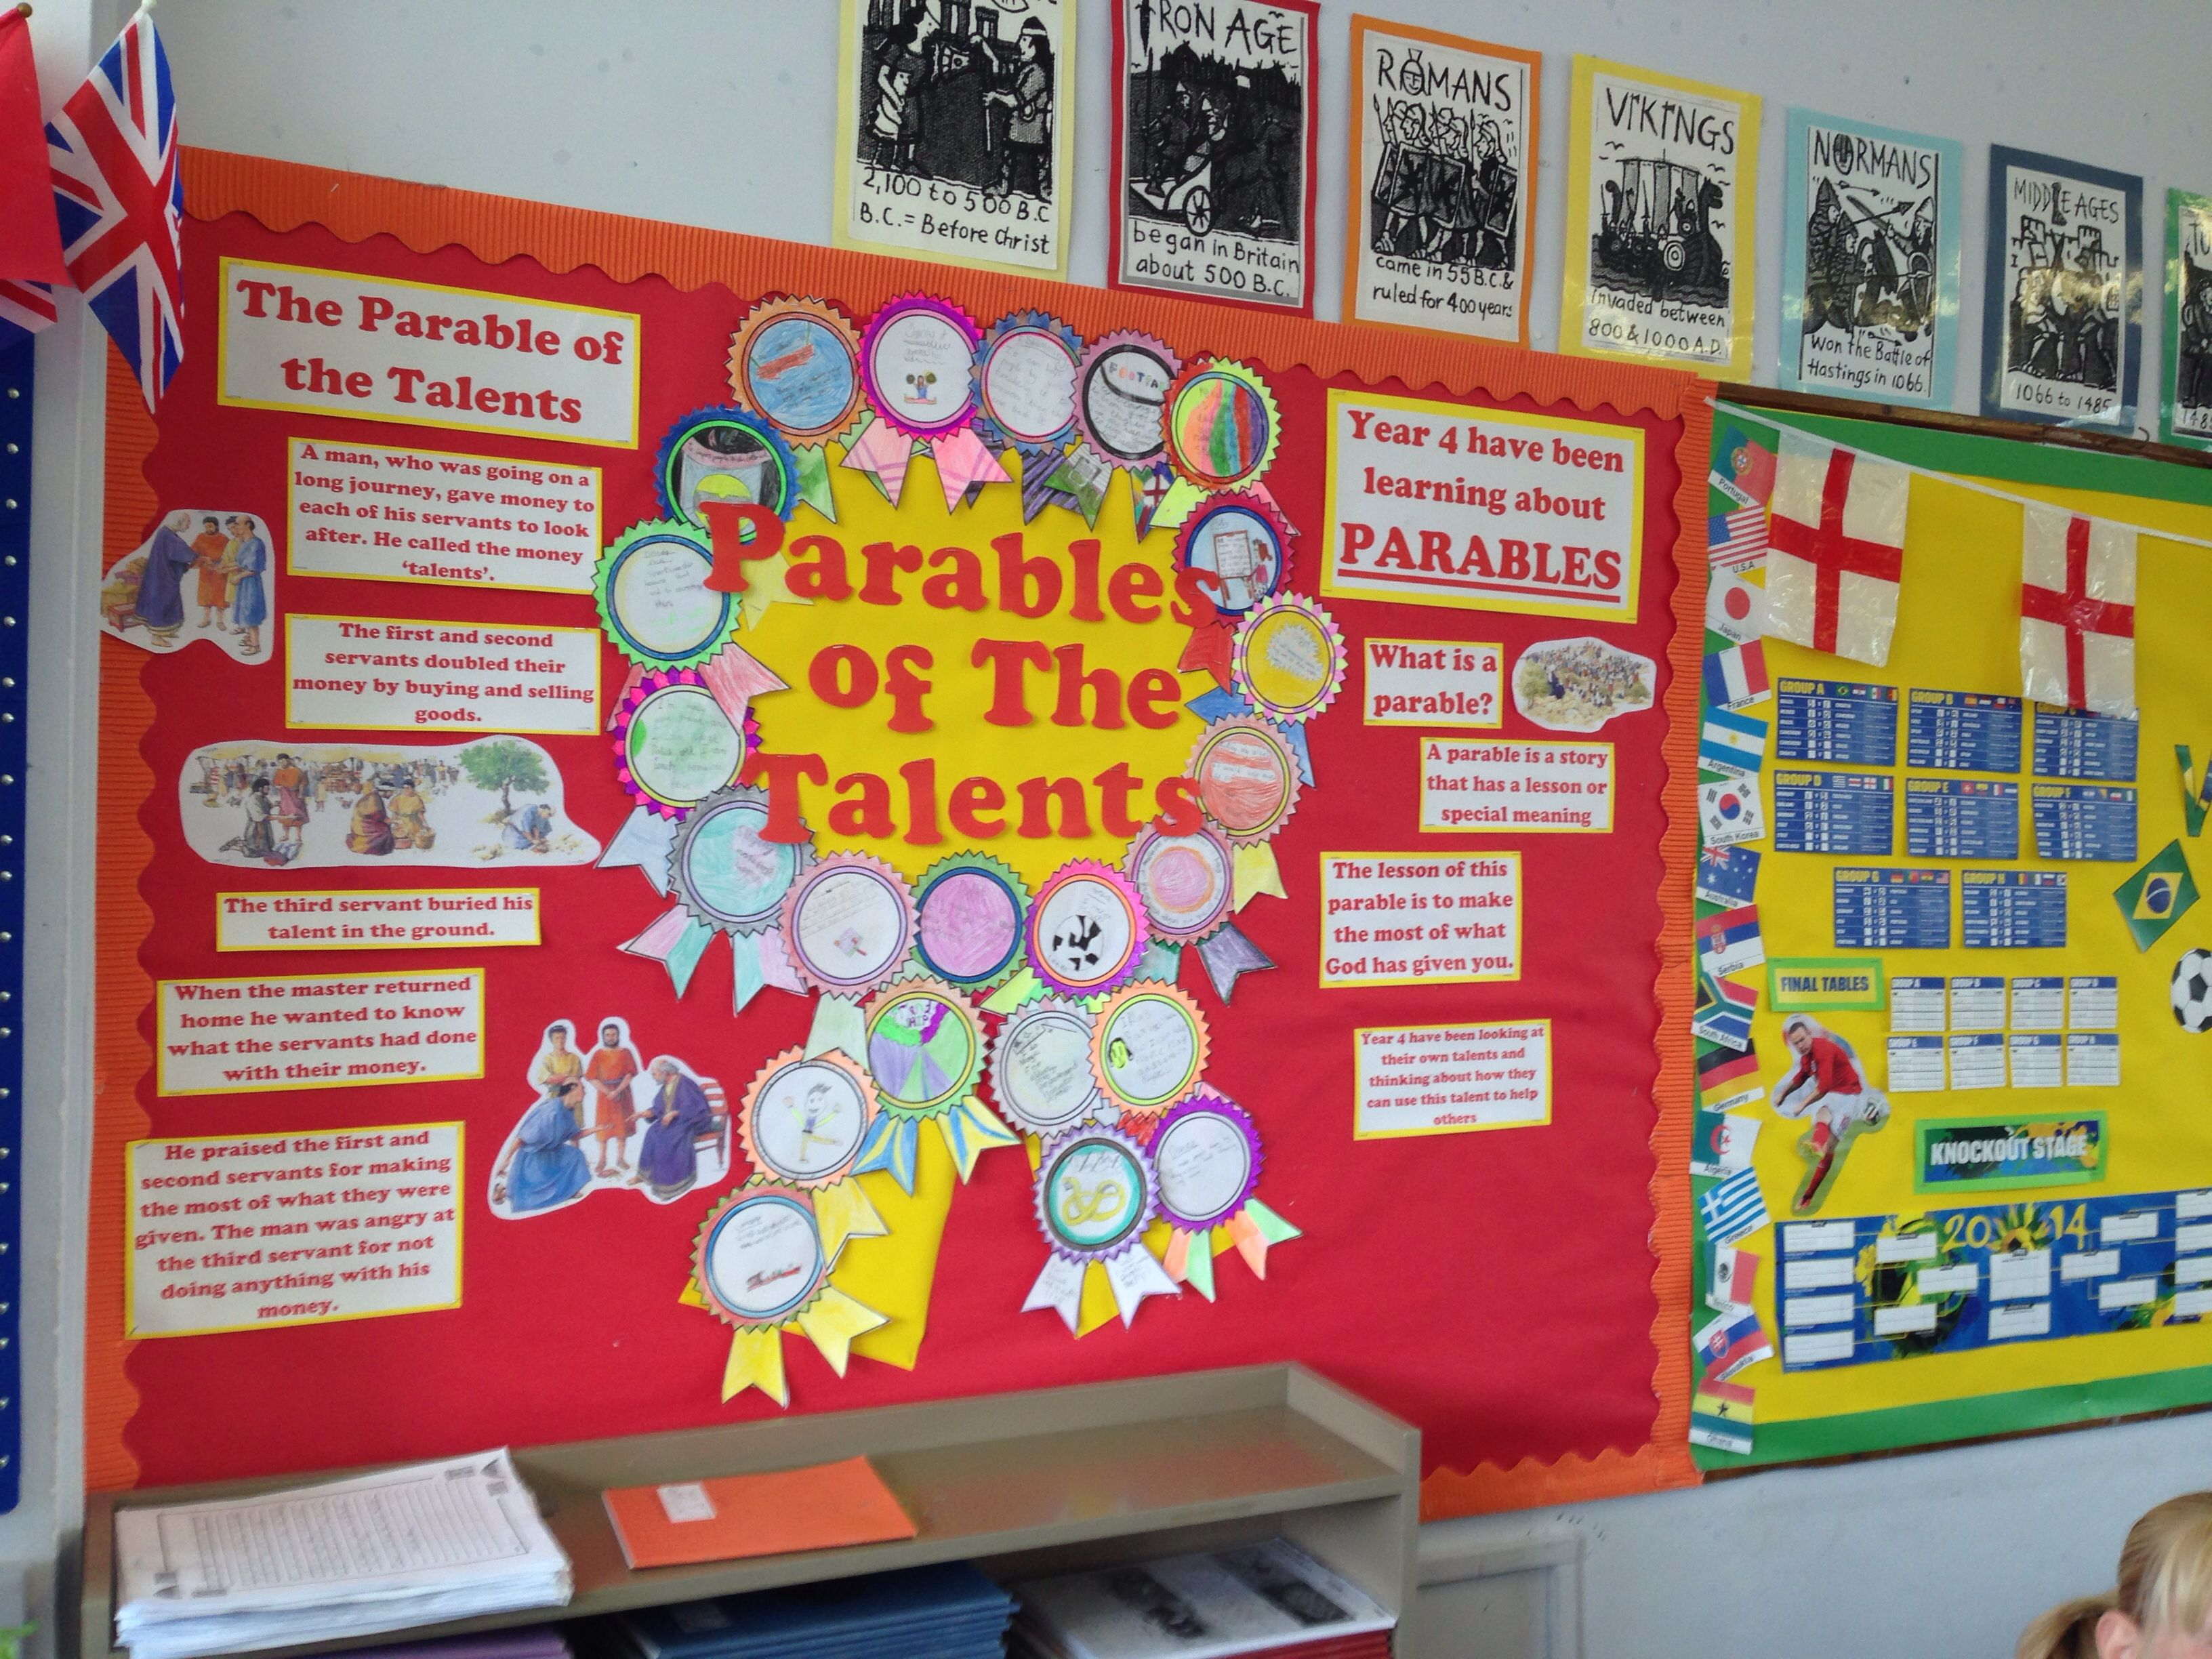 Meaning of parable of talents - Parables Display What Is A Parable Parable Of The Talents Children Showing Their Own Talent